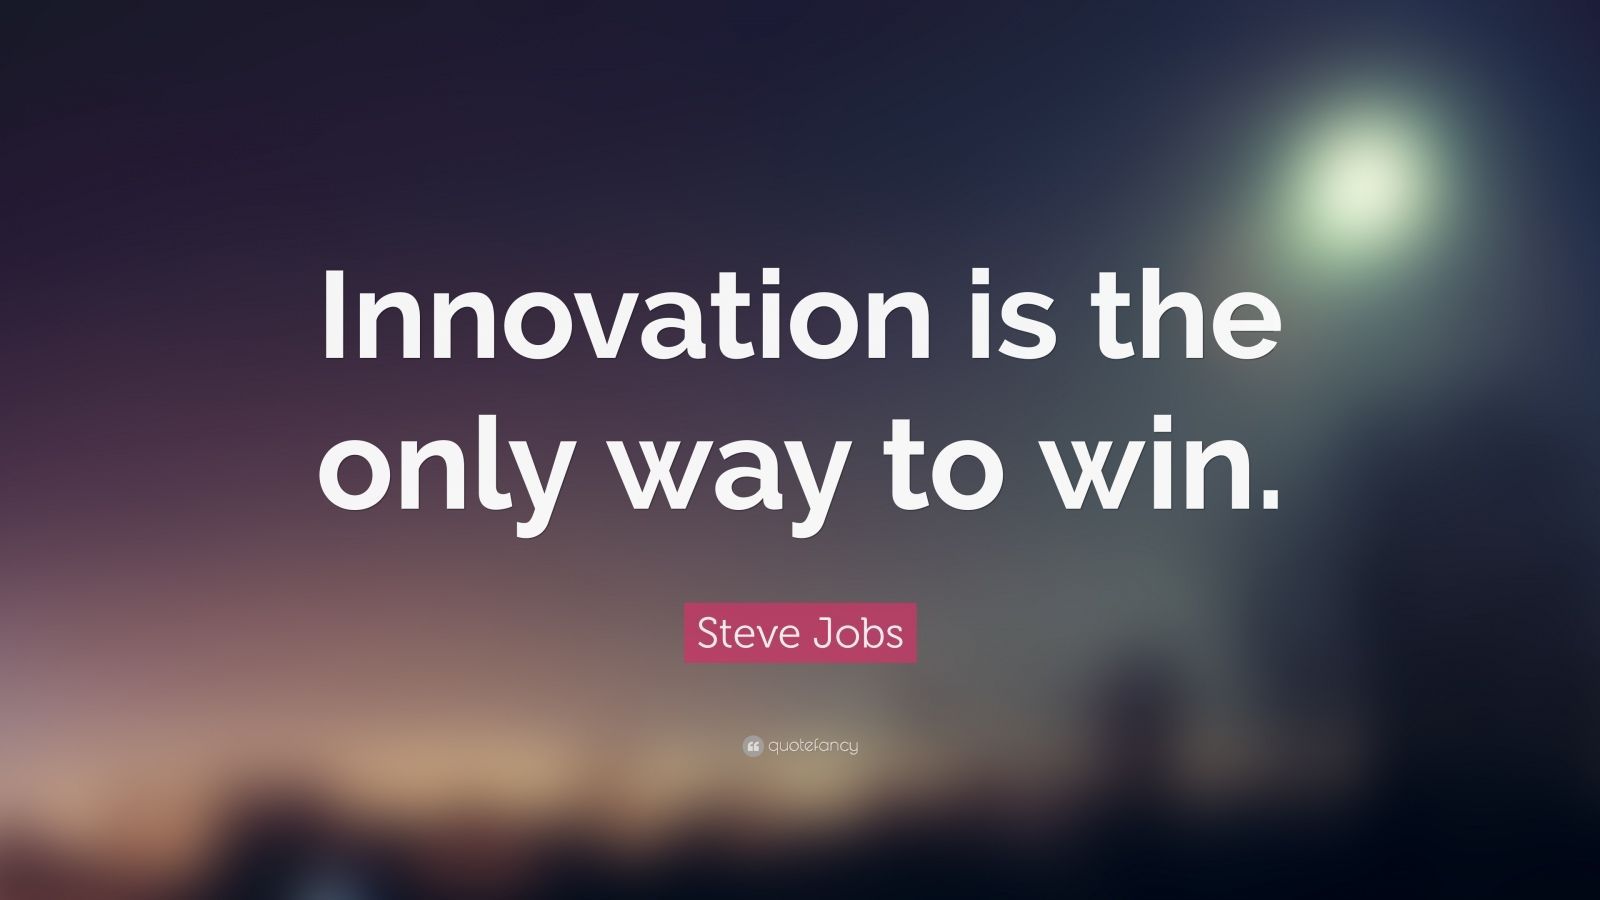 Steve Jobs Motivational Quotes Wallpaper Steve Jobs Quote Innovation Is The Only Way To Win 13